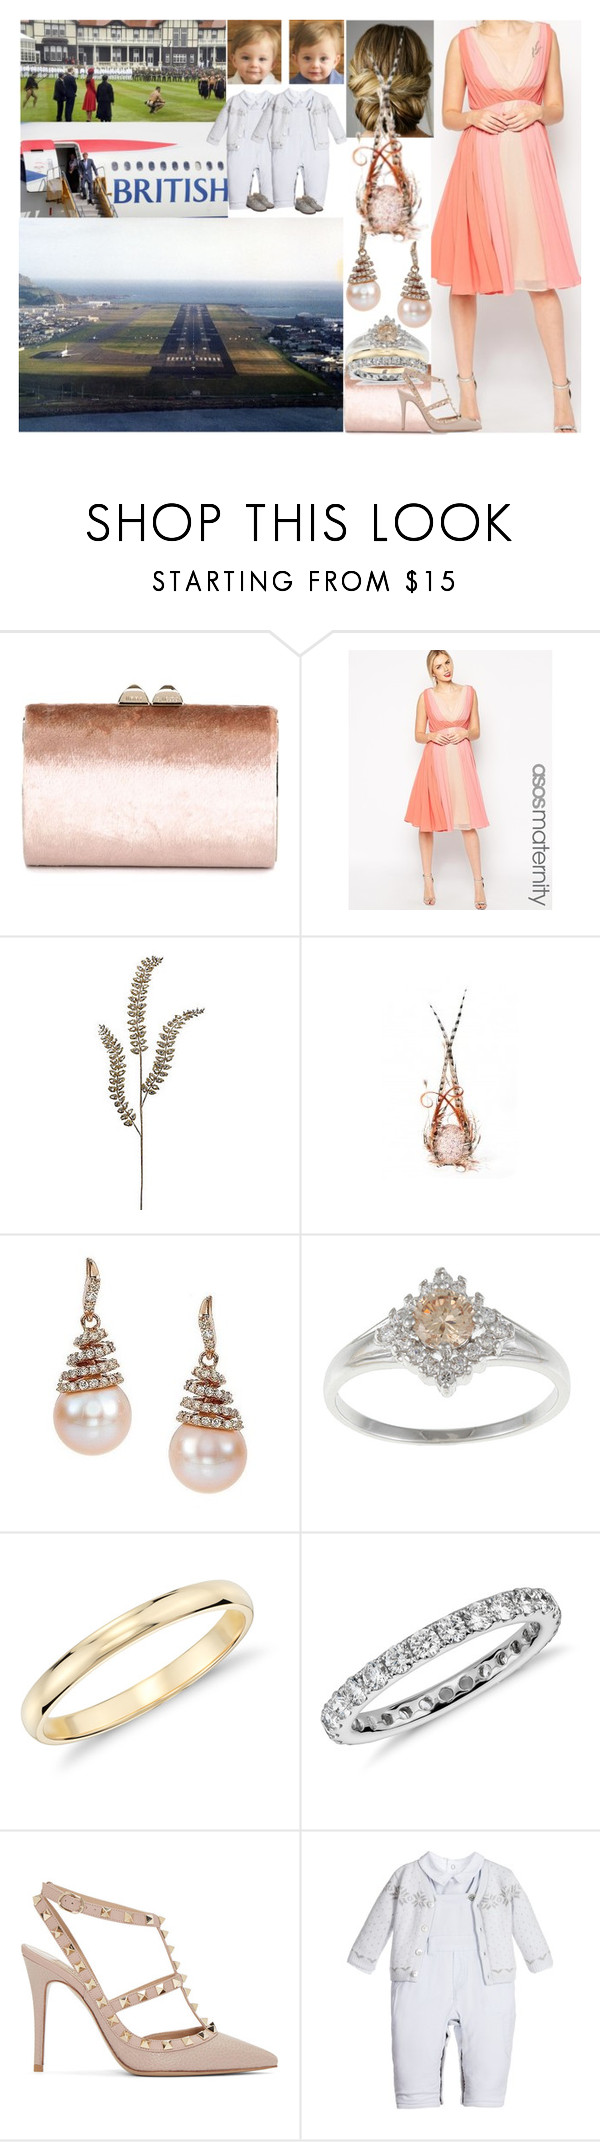 """Tour of New Zealand & Australia Day 1 : Arriving in Wellington, being welcomed at the airport and later attending a ceremonial welcome at the Government House"" by charlottedebora ❤ liked on Polyvore featuring Jimmy Choo, ASOS, Frontgate, LE VIAN, Blue Nile, Valentino, Tartine et Chocolat and Il Gufo"